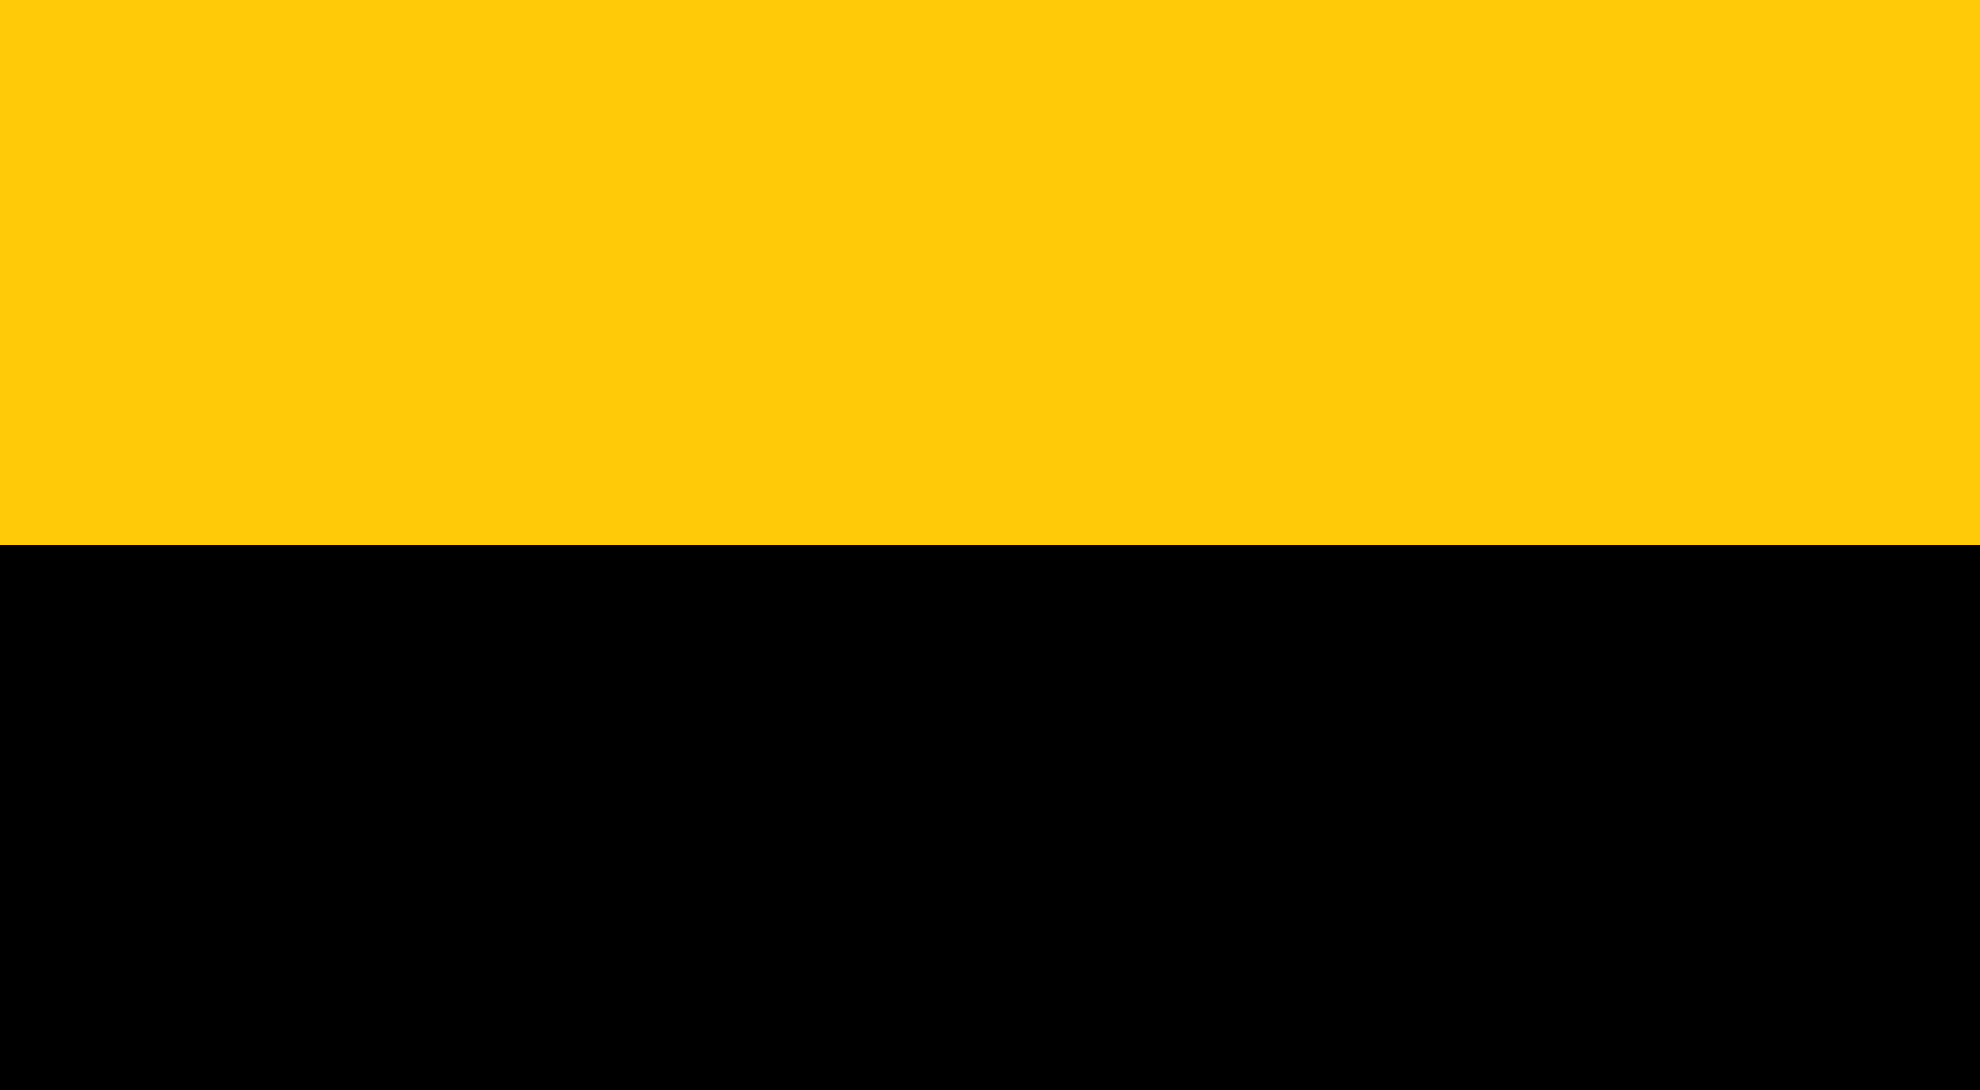 1980x1090 - Yellow and Black 23